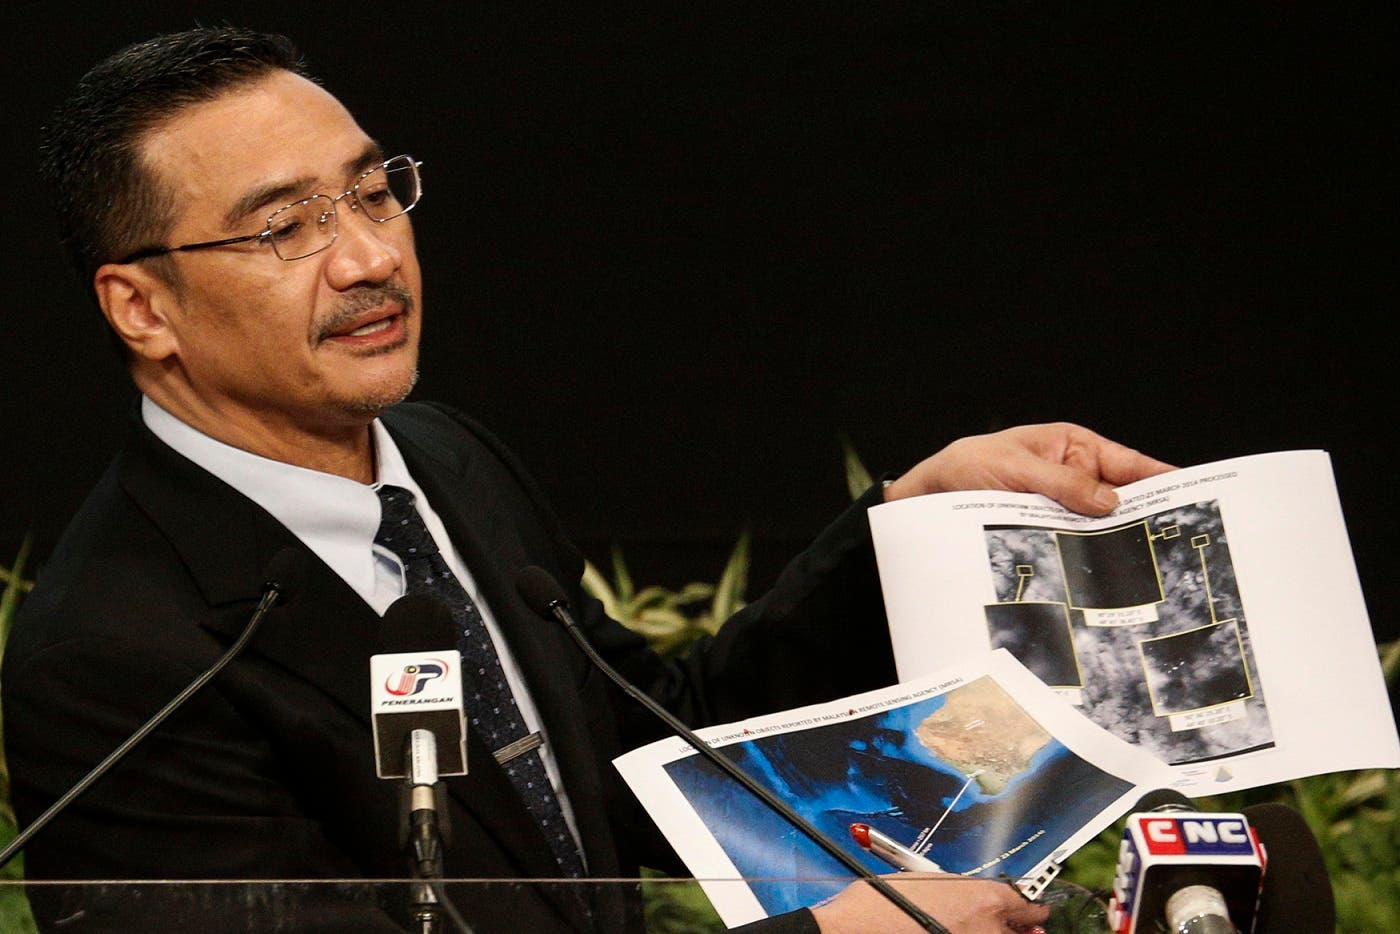 Malaysia's acting Transport Minister Hishammuddin Hussein holds satellite images as he speaks about the search for the missing Malaysia Airlines Flight MH370. (Reuters)